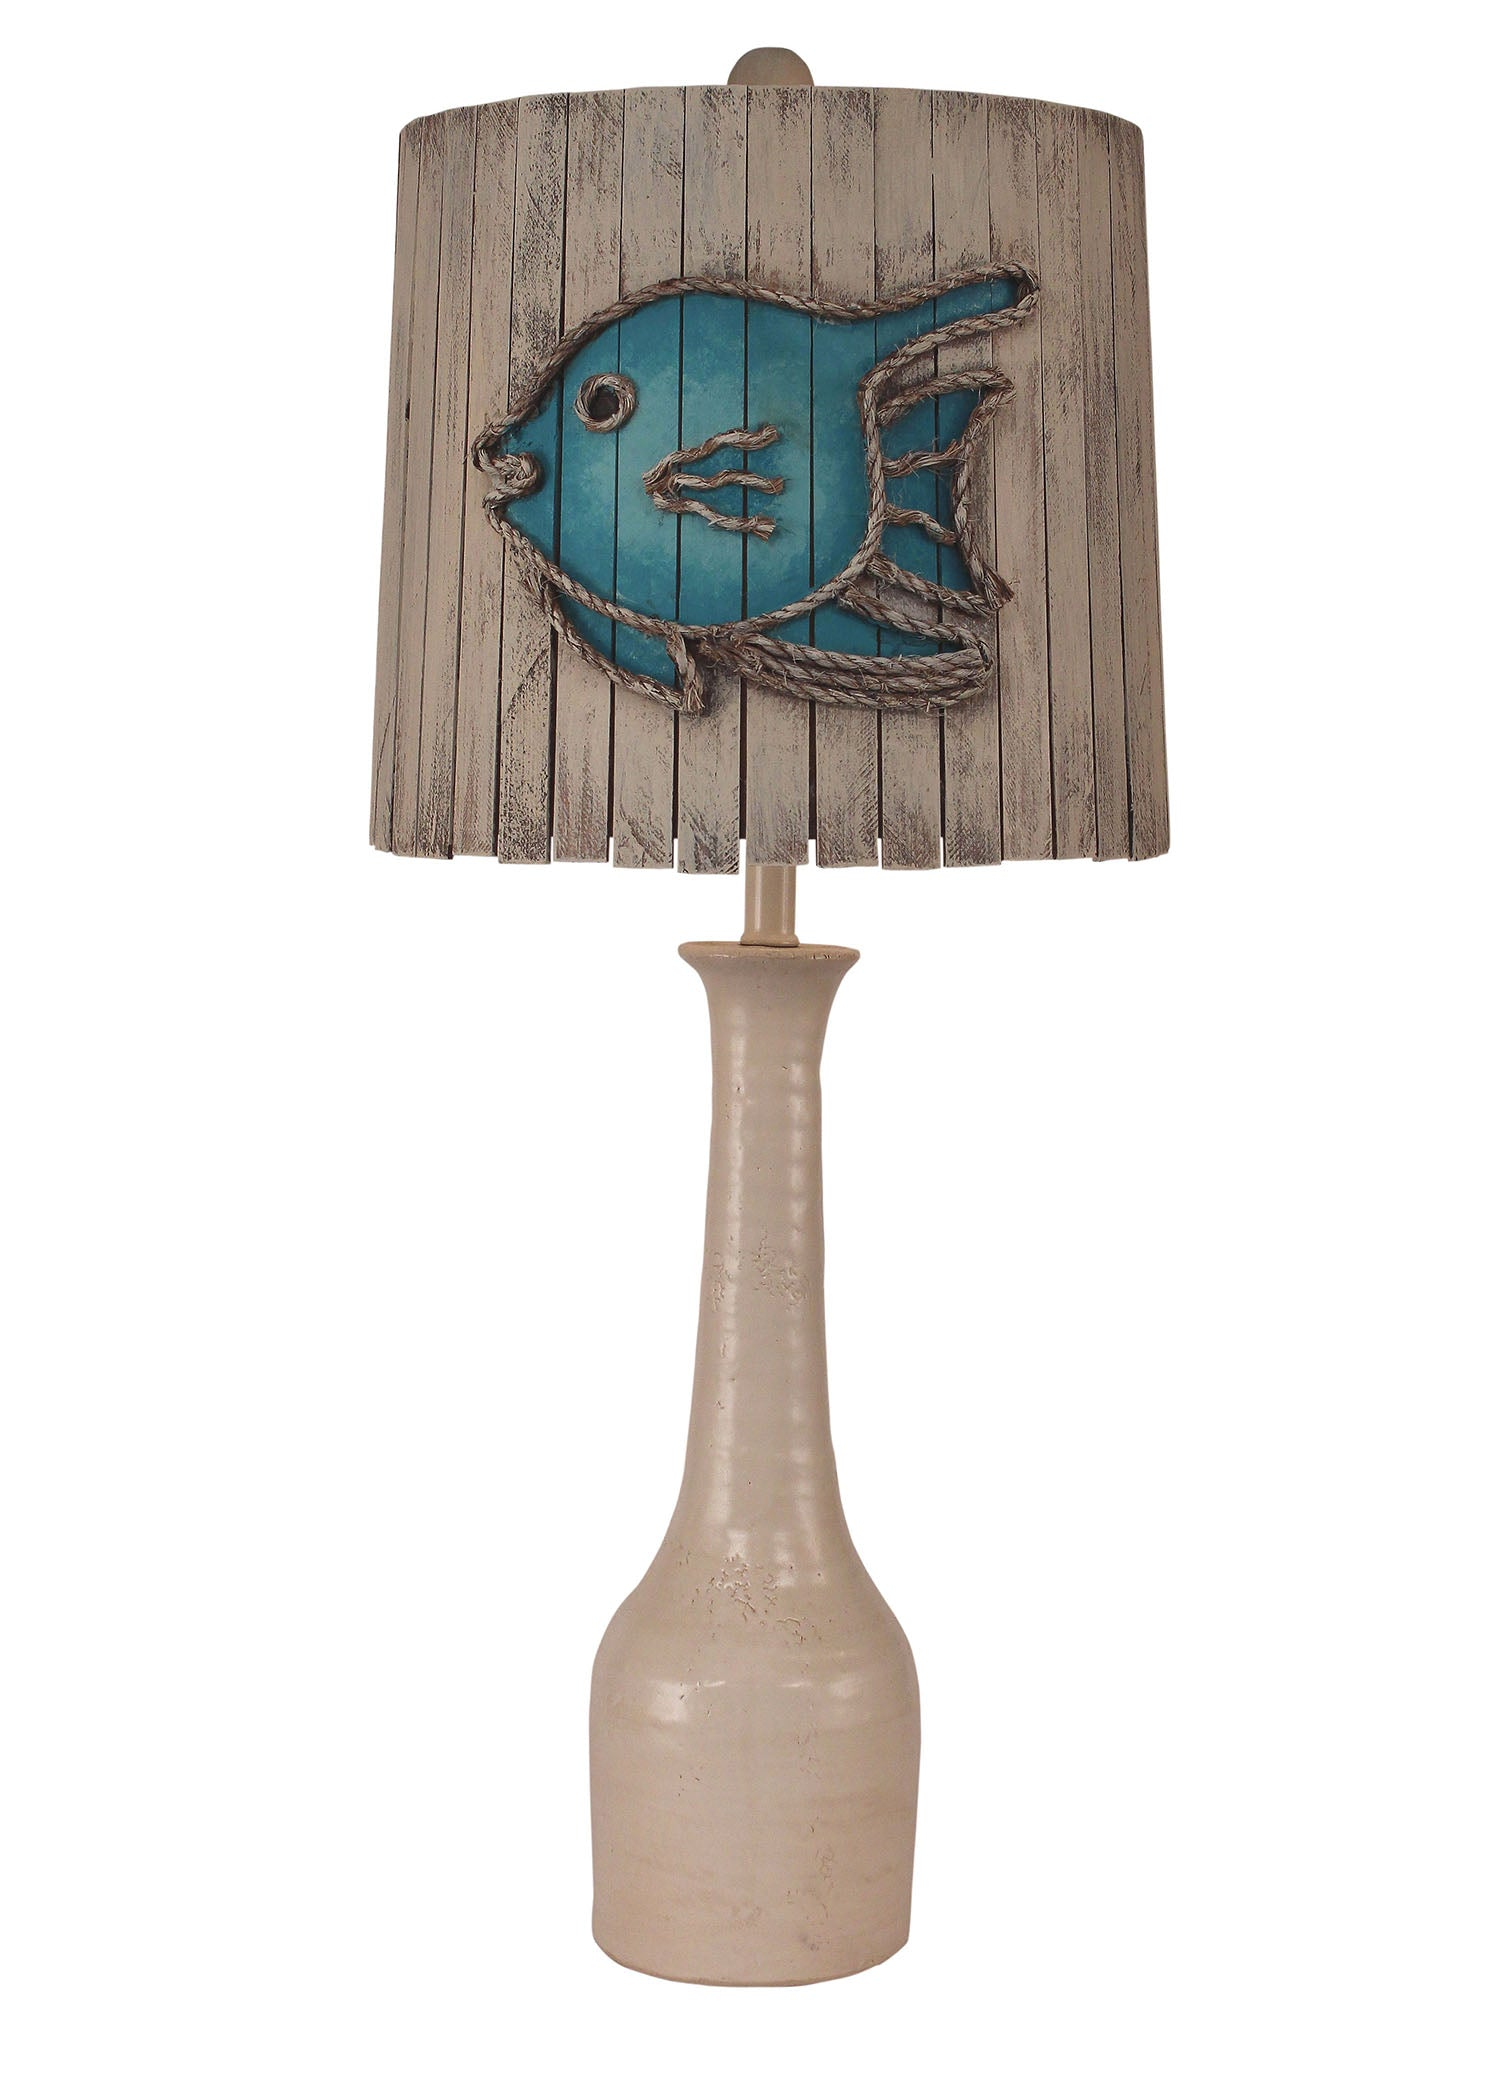 Antique Cottage Slender Neck Pottery Table Lamp w/ Angel Fish Shade - Coast Lamp Shop